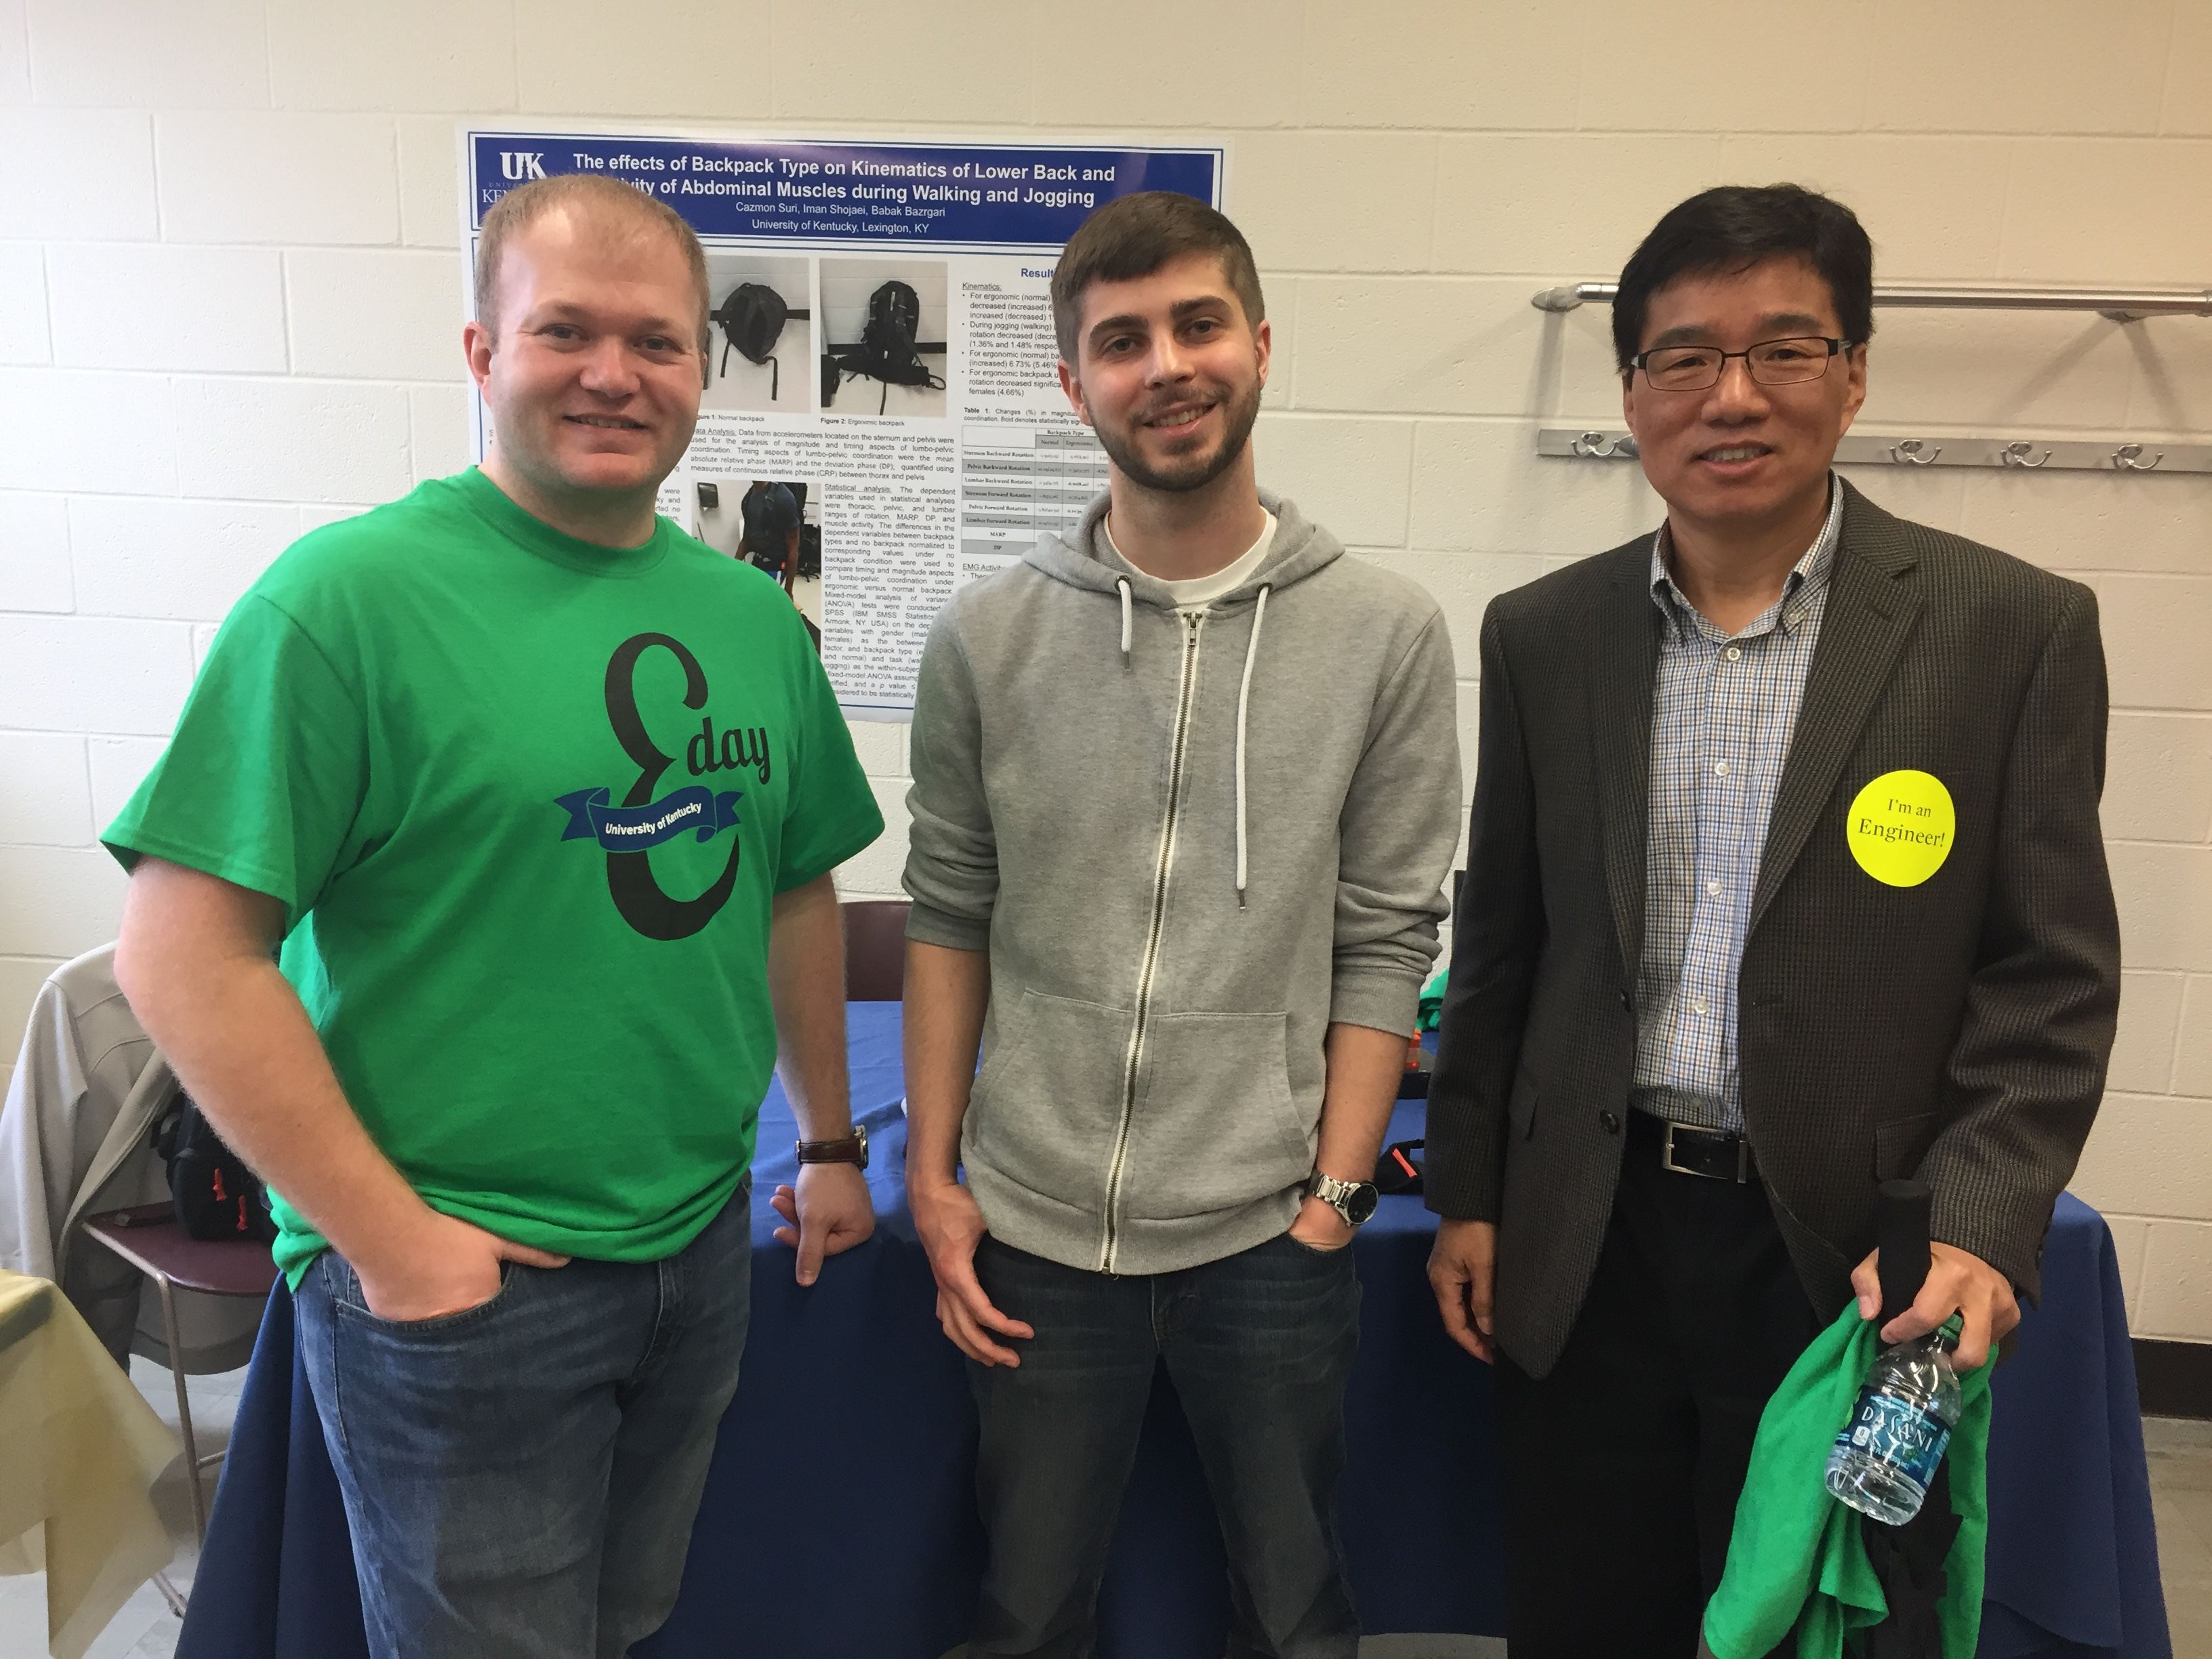 UK BME Department Chair, Dr. Guigen Zhang (right), with UK BMES members in front of the Human Musculoskeletal Biomechanics E-day exhibit.